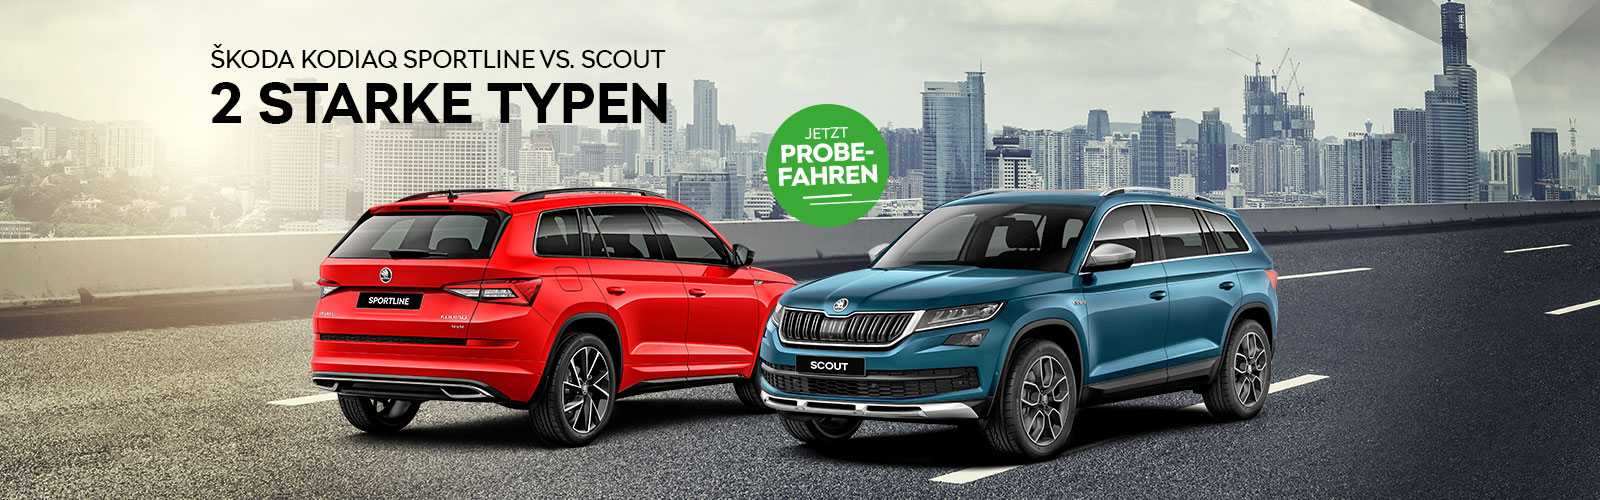 Kodiaq - 2 Starke Typen Background